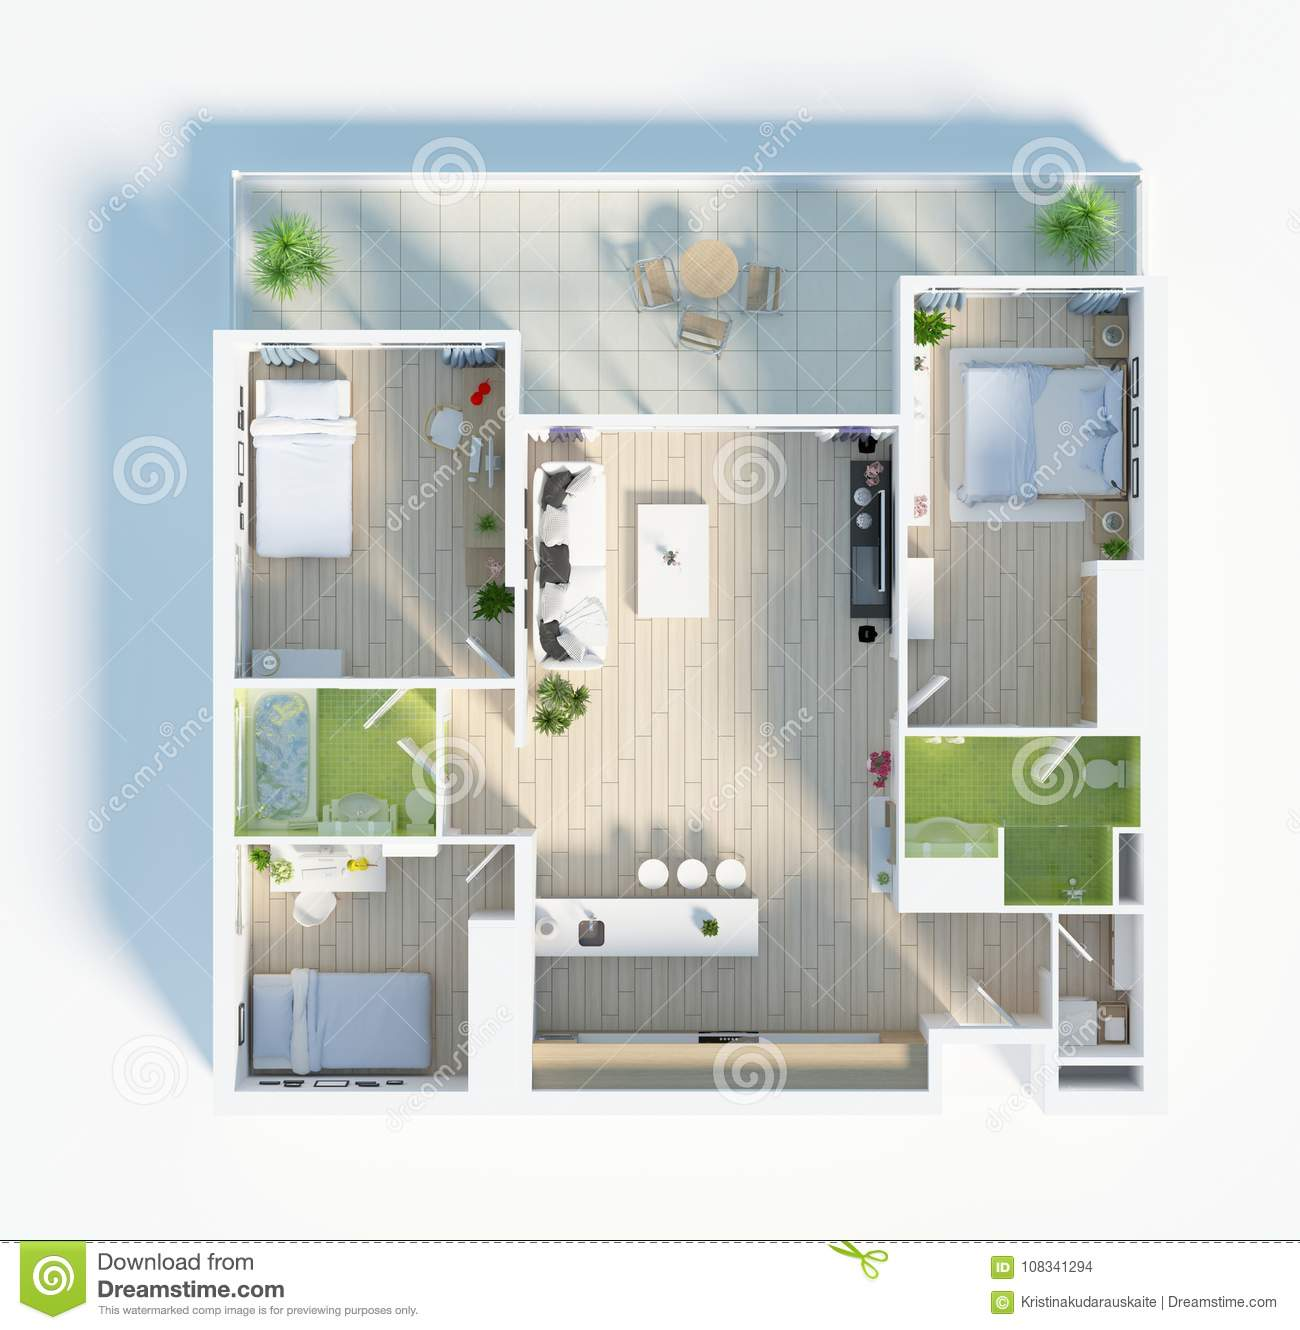 Floor Plan Of A House Top View 3D Illustration. Open